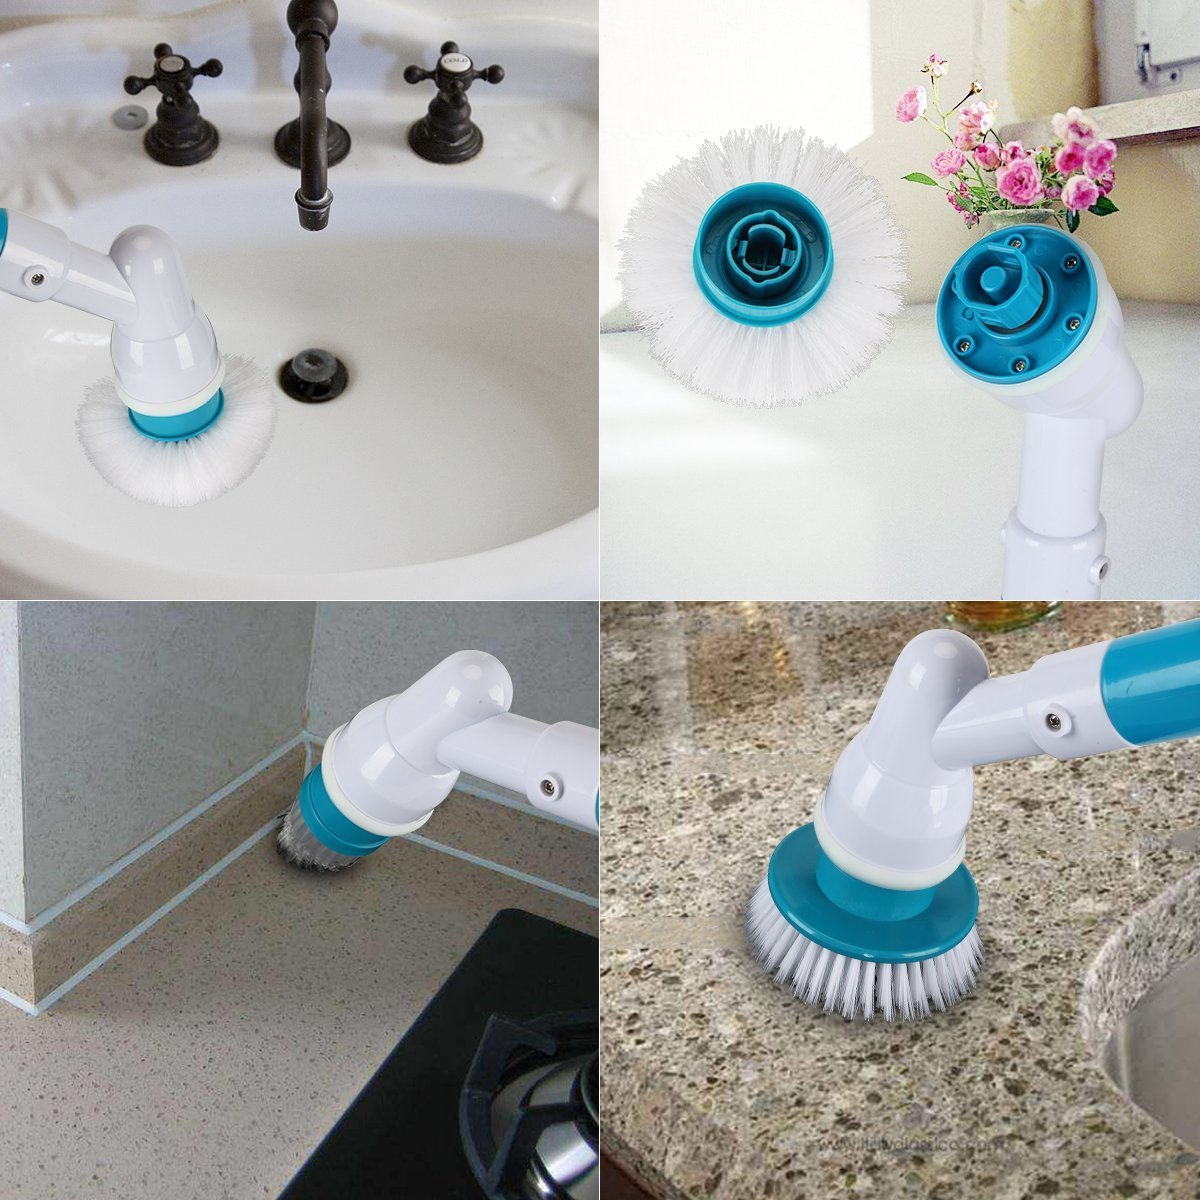 Electric Spin Scrubber Rechargeable Cordless Turbo Scrubber with 3 Replaceable Brush Heads Cleaning Brush with Extension Handle for Bathroom Floor,Tiled Wall,Bathtub and Kitchen Upgraded Greecon